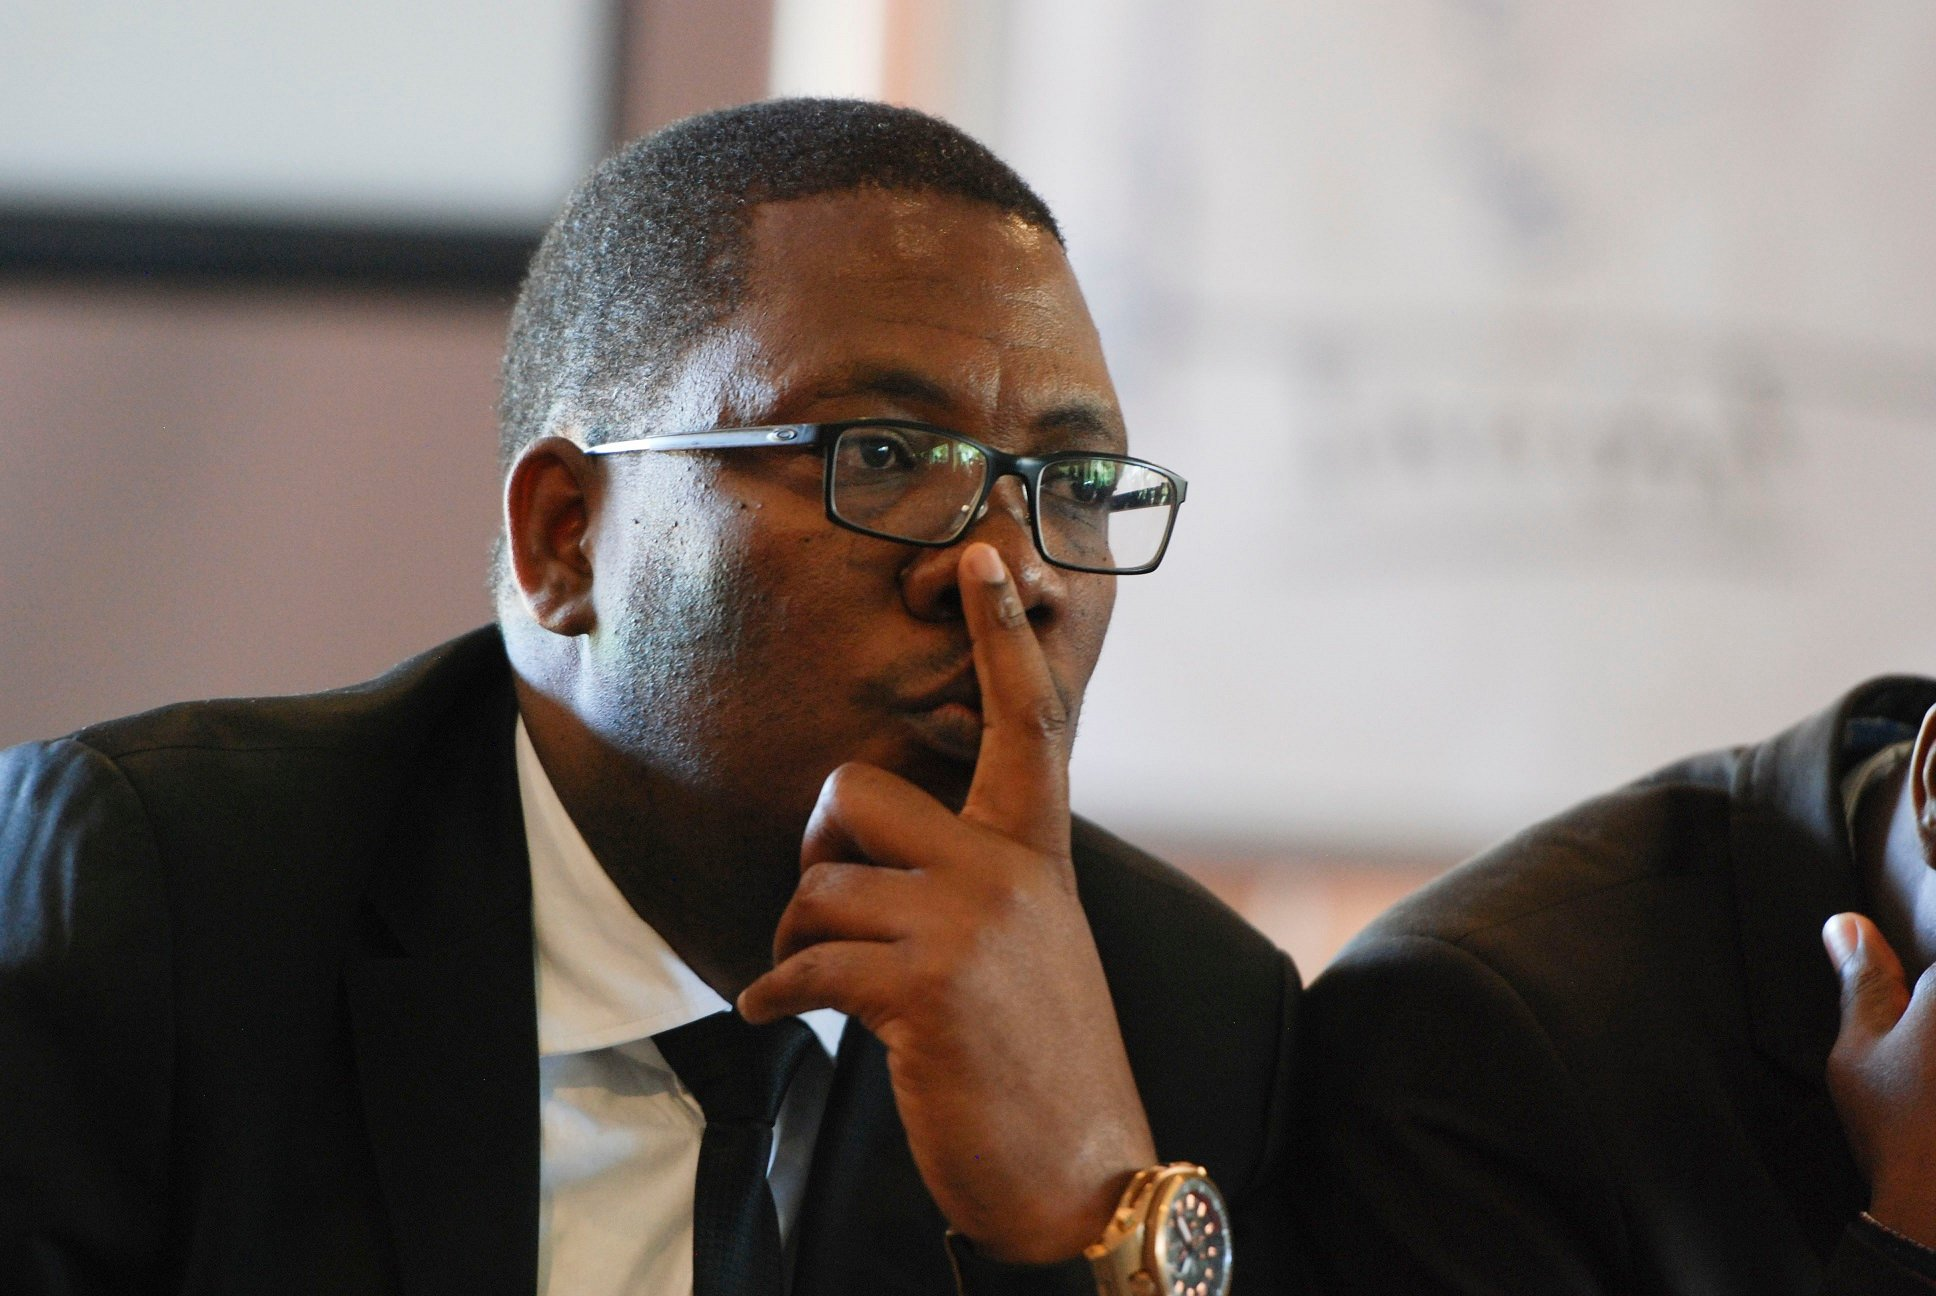 File: As police investigate the tragic drowning of a Grade 7 pupil in Magaliesburg, Gauteng MEC Panyaza Lesufi is due to offer his condolences to the family.